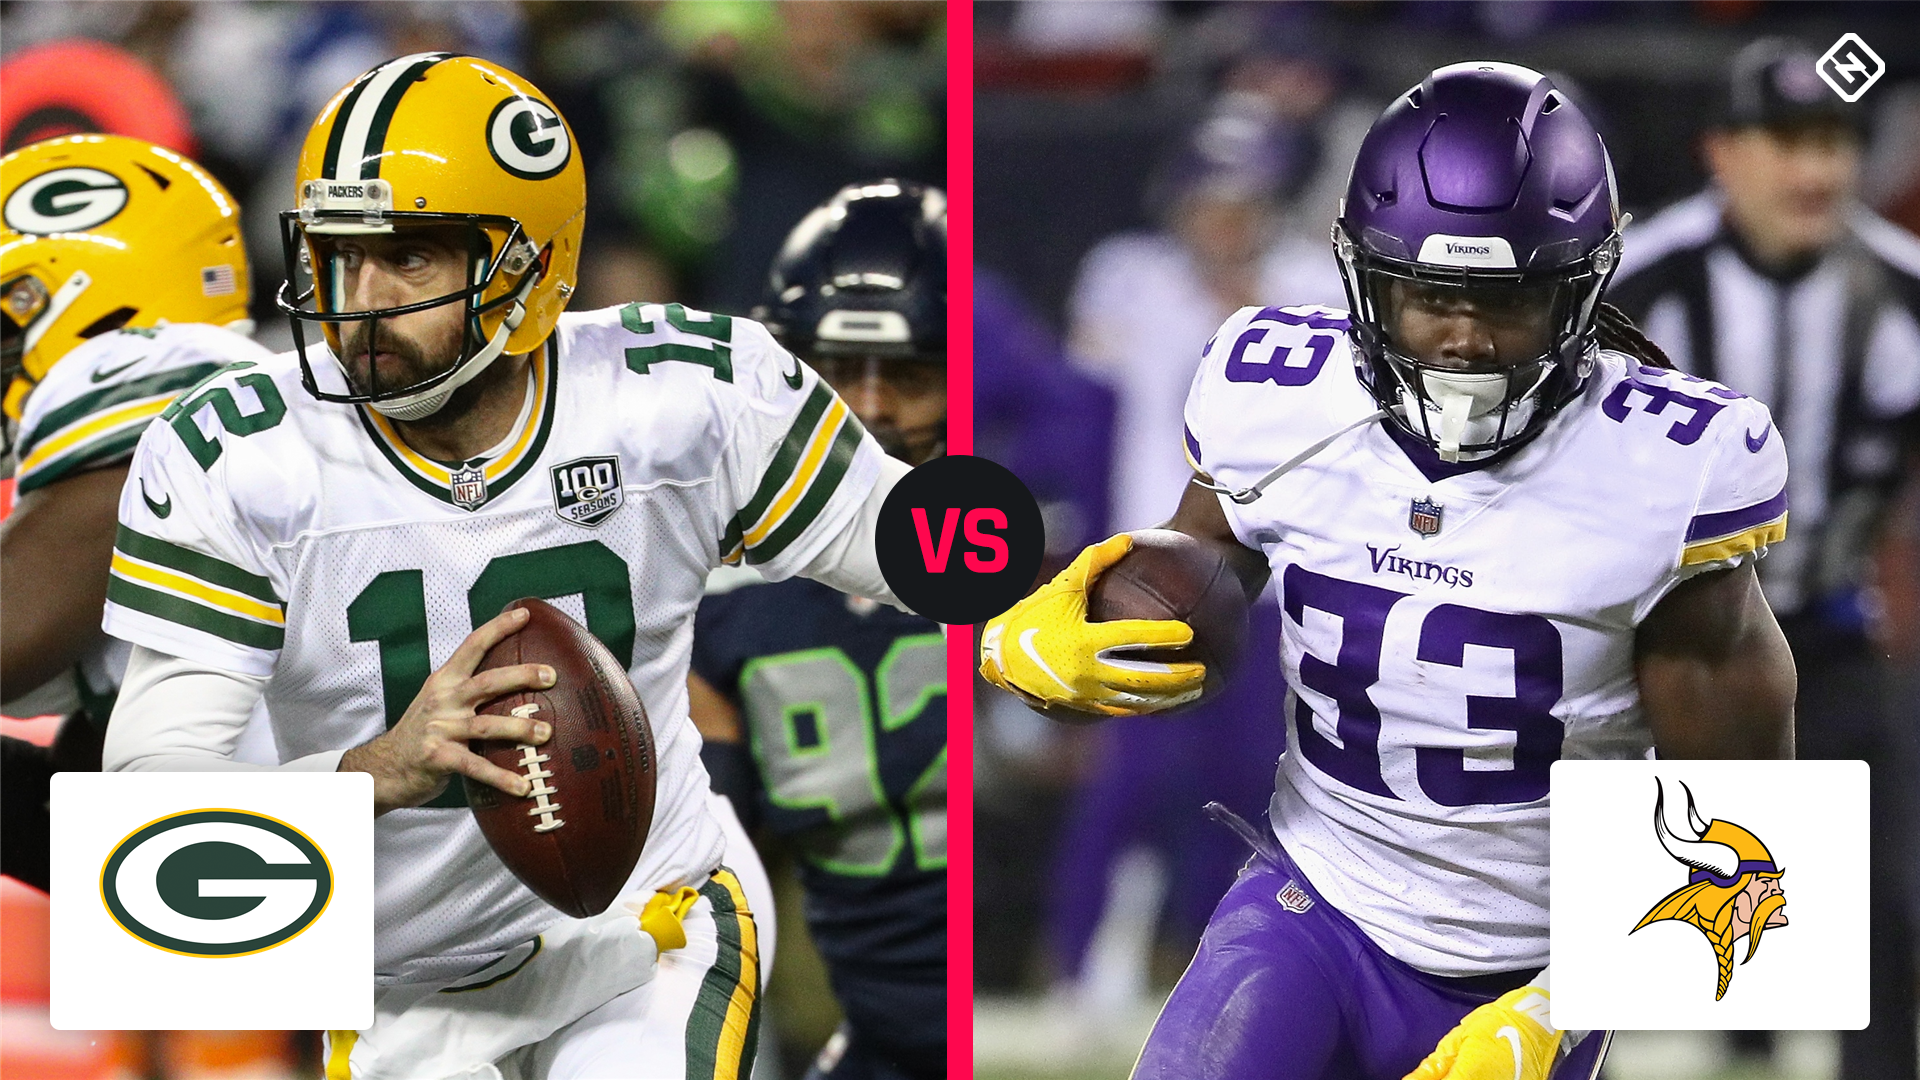 Packers Vs Vikings Results Score Highlights From Sunday Night Game